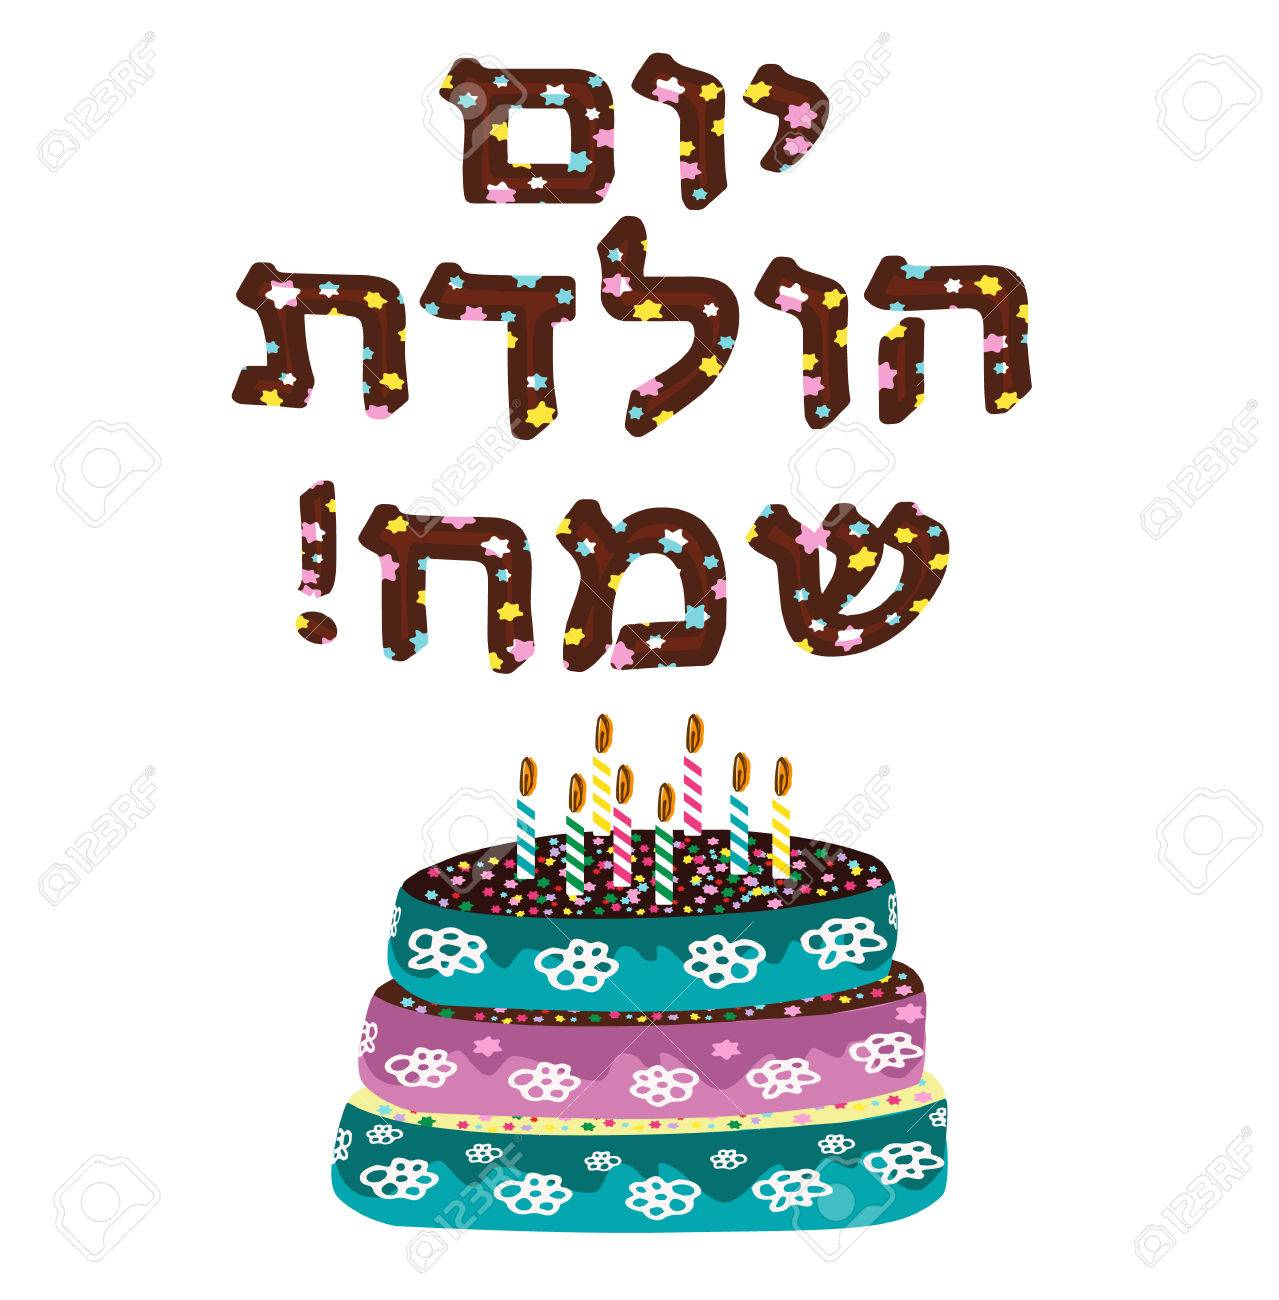 Beautiful chocolate cake with birthday candles the inscription beautiful chocolate cake with birthday candles the inscription in hebrew hayom yom huledet in translation kristyandbryce Images